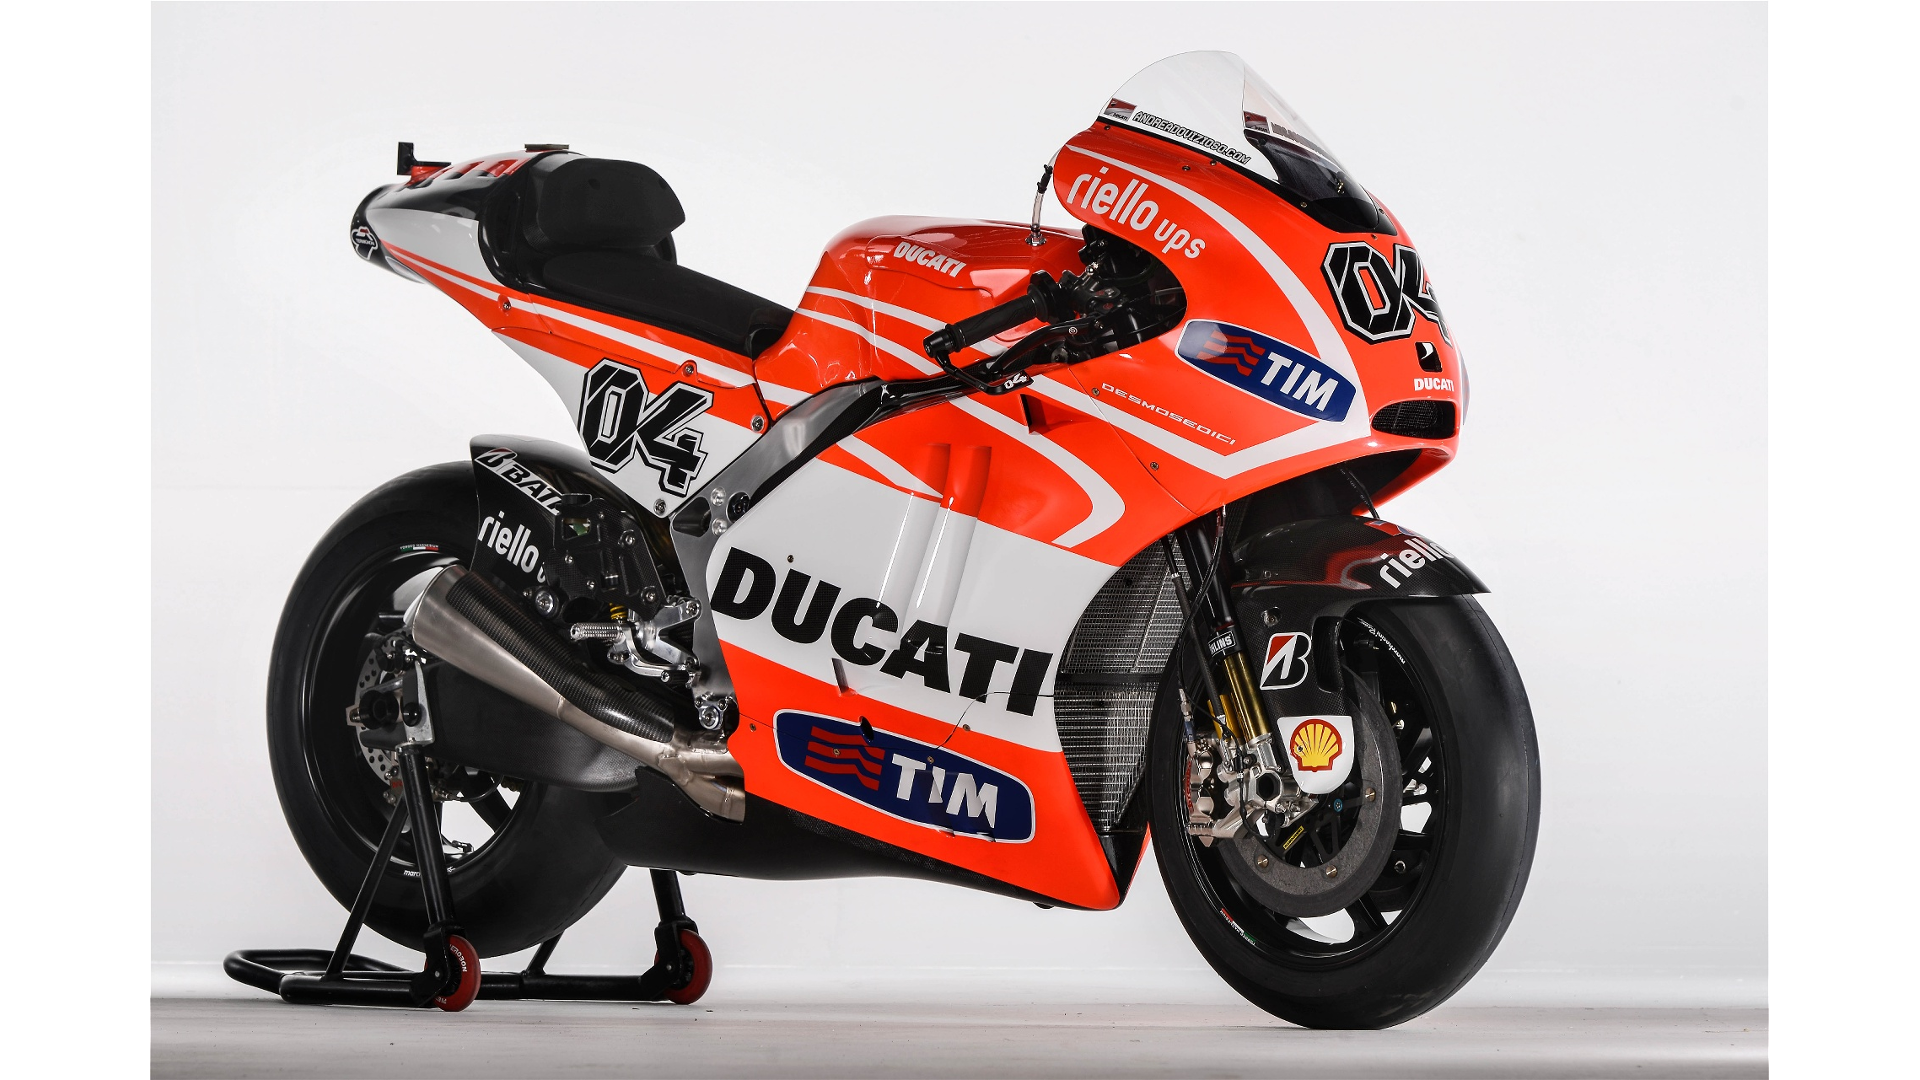 Ducati GP13 - Page 2 Resized_00036948.mediagallery_output_image_%5B1920x1080%5D-O